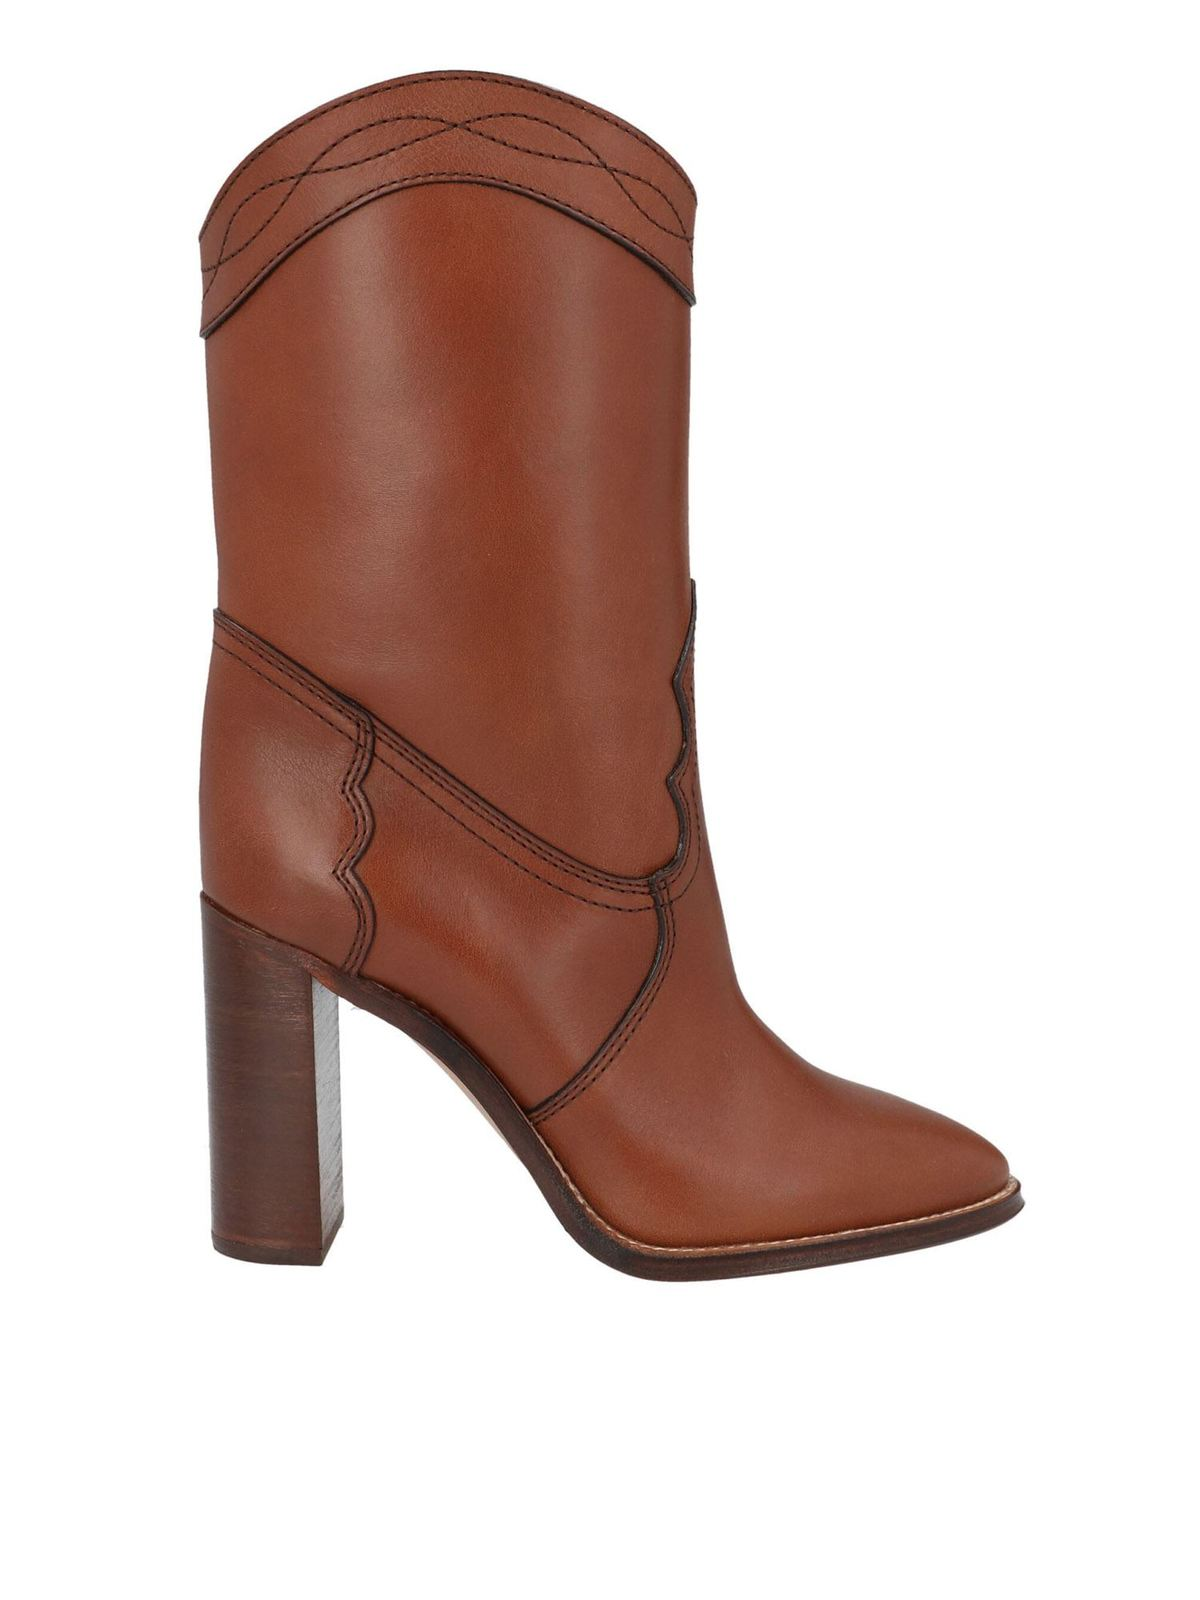 SAINT LAURENT KATE BOOTS IN BROWN